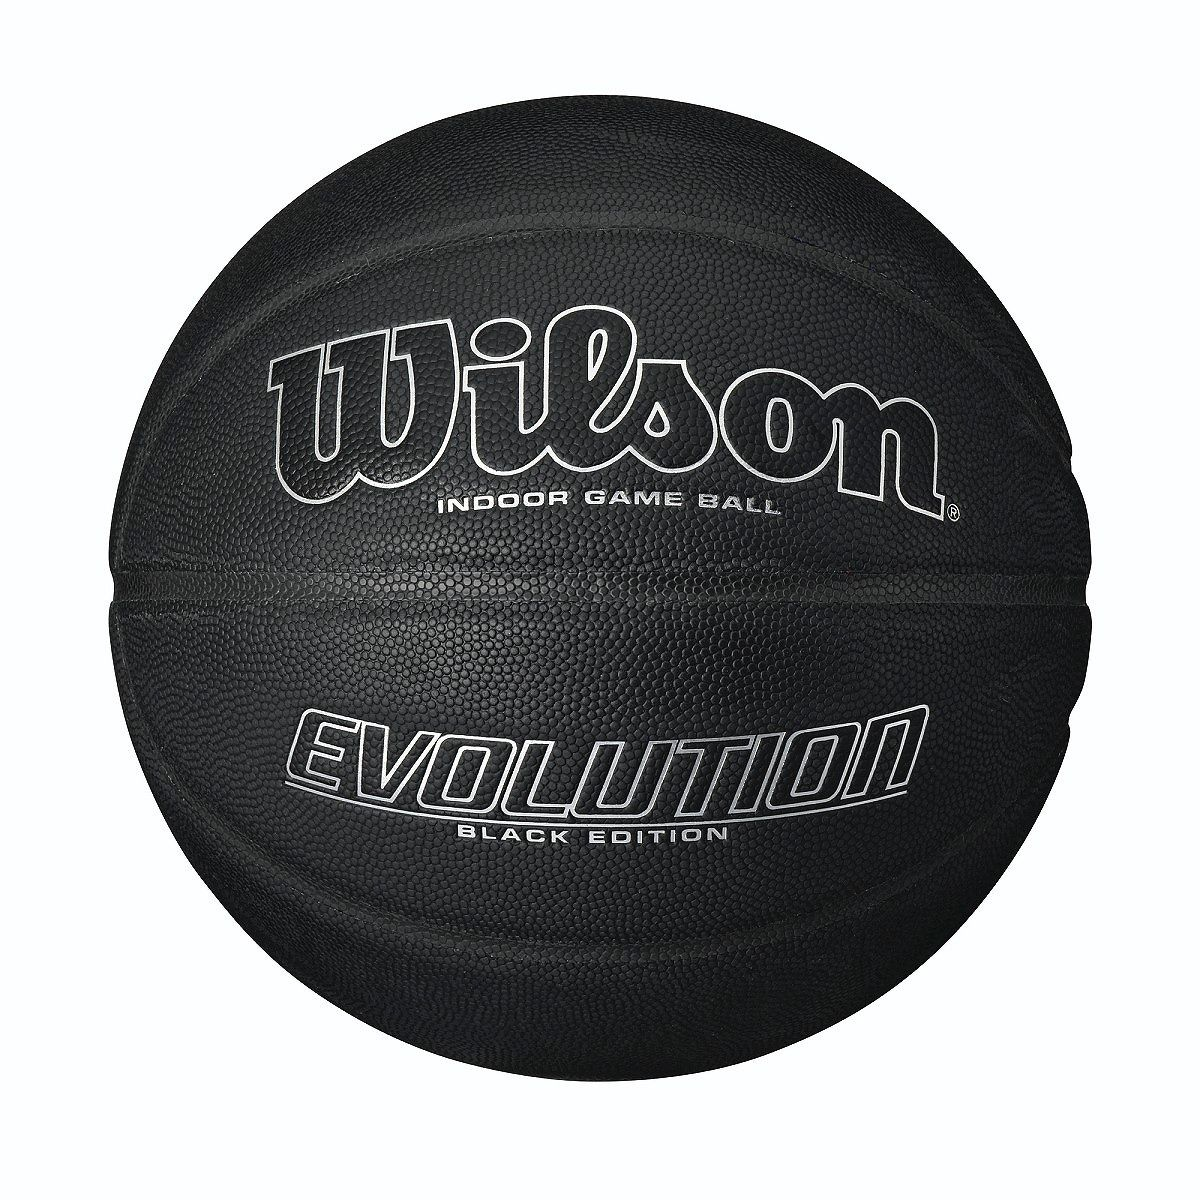 Wilson Evolution Black Edition Basketball - Sweatband.com